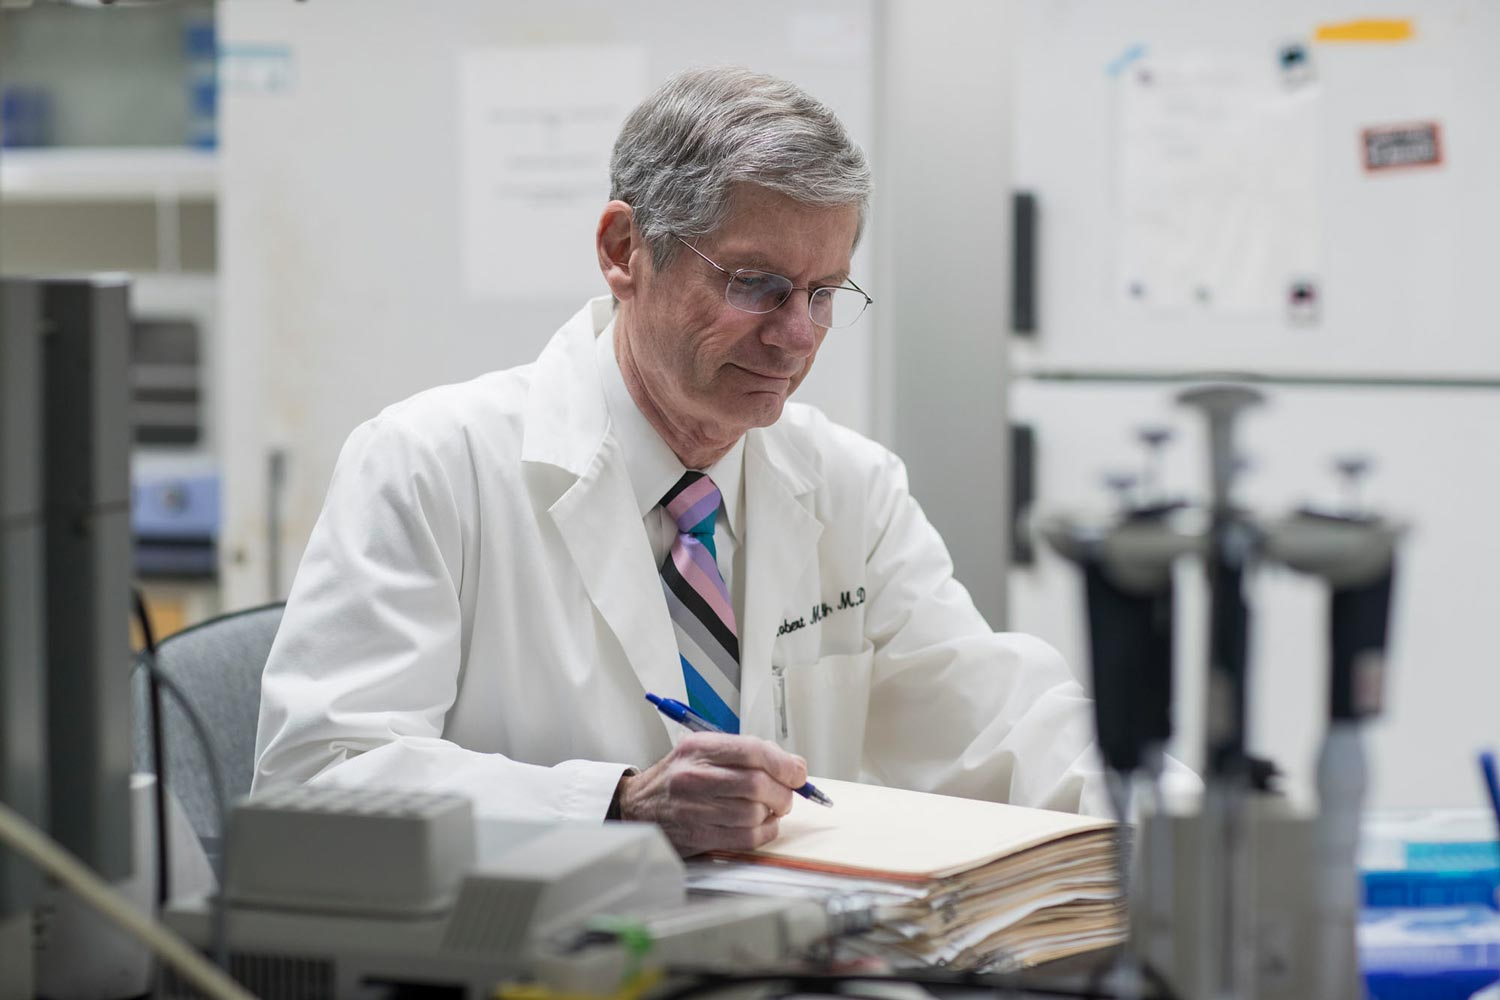 At 77, Dr. Robert Carey shows no signs of slowing down. After an unsuccessful attempt at retirement in 2015, Carey led a team of heart experts that issued sweeping new blood pressure guidelines last year.